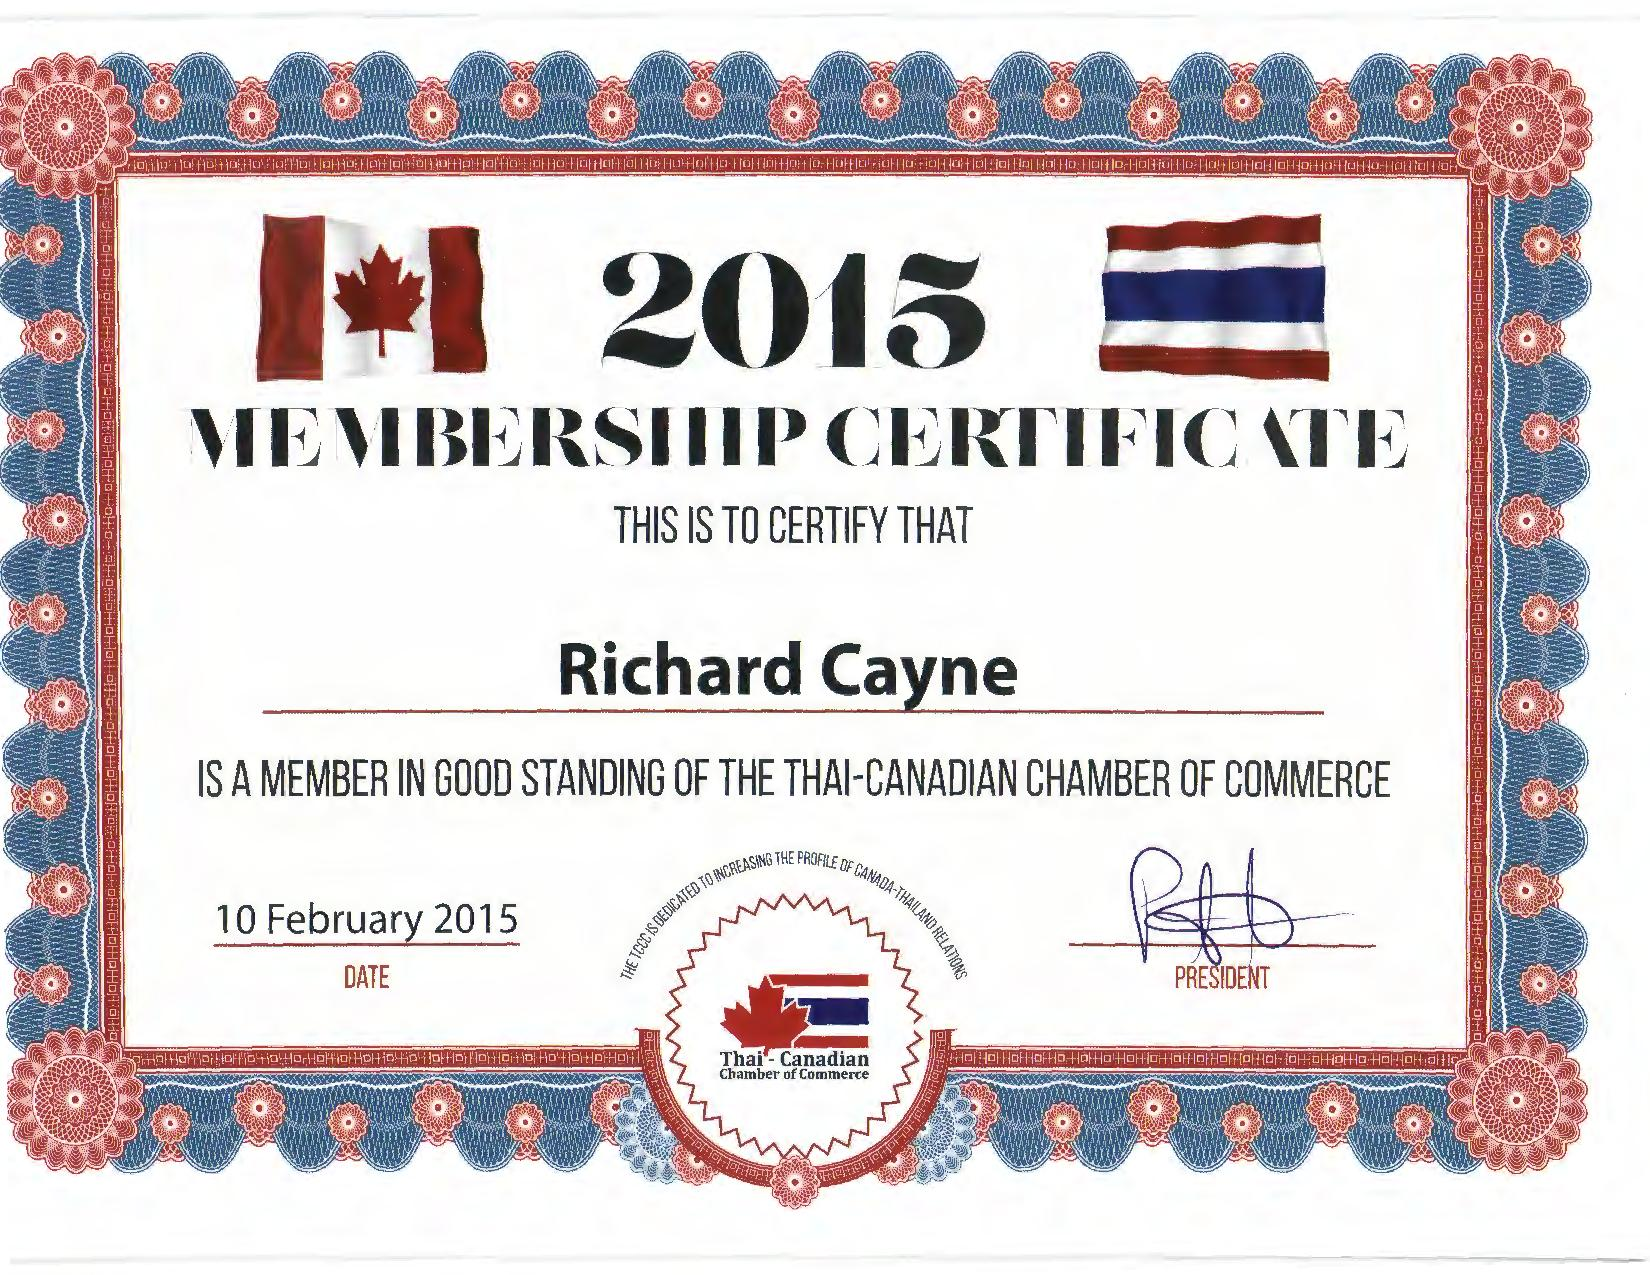 Richard Cayne - Canadian Chamber of Commerce certificate for 2015